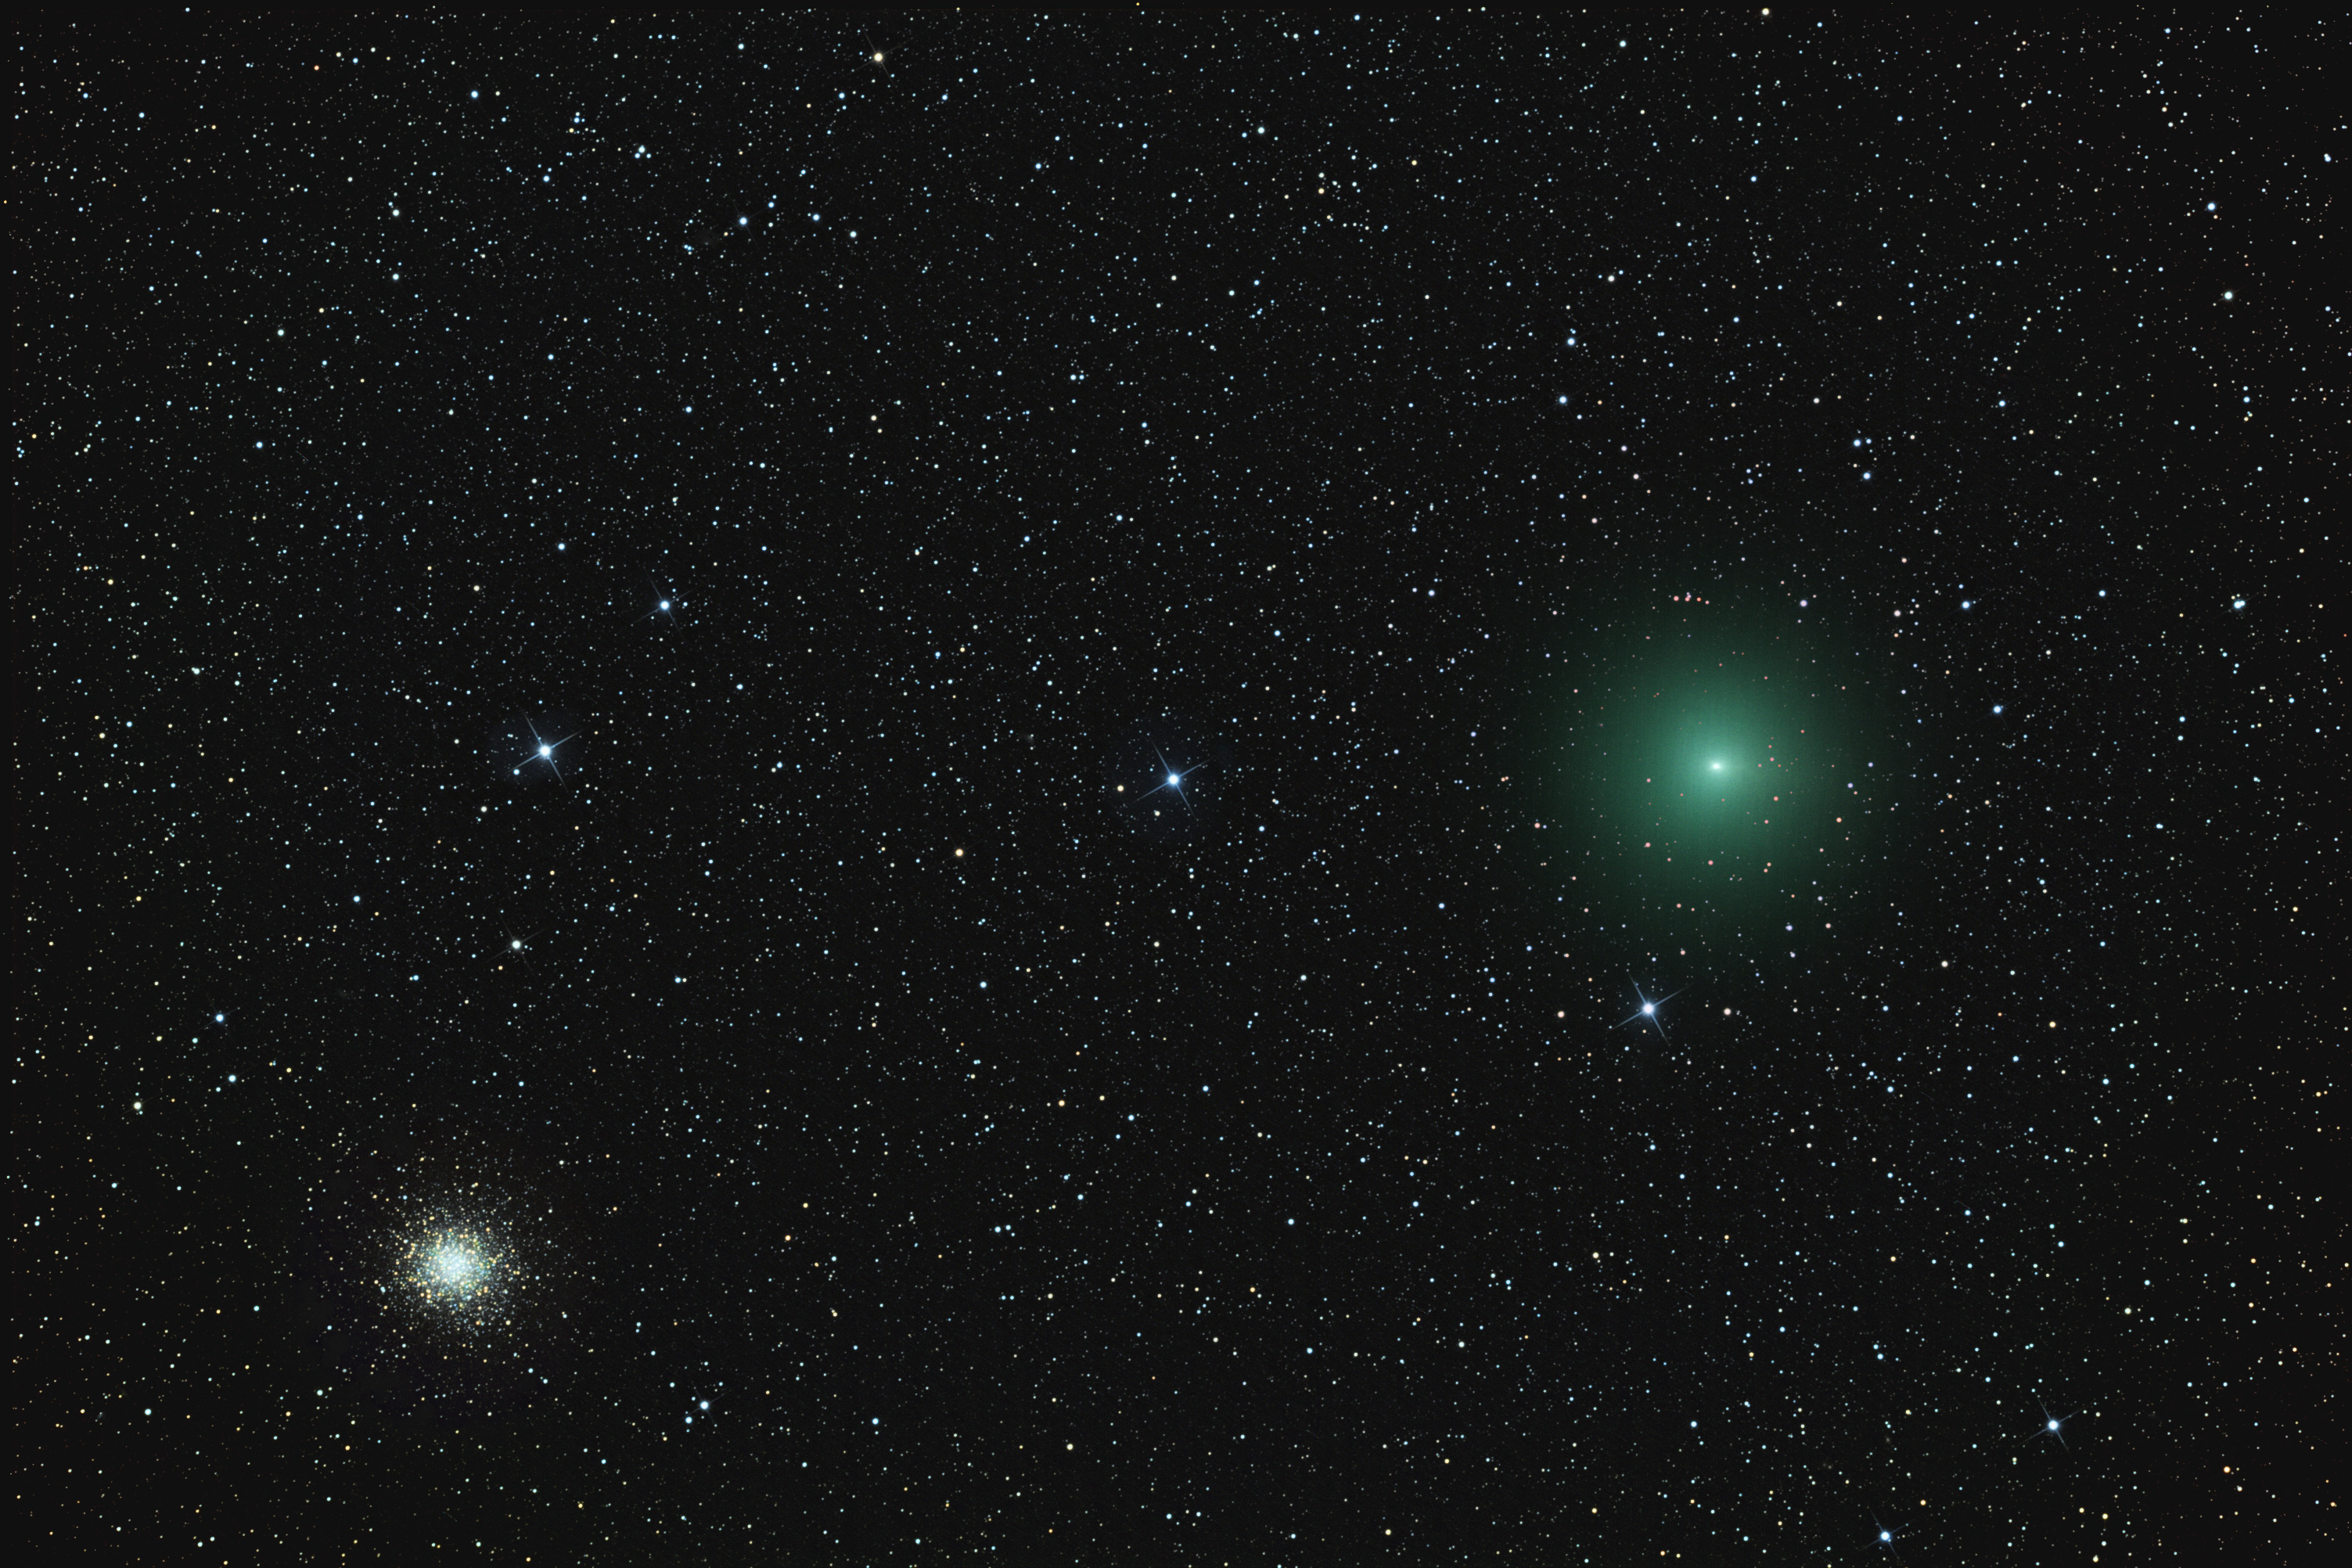 Comet 252P Linear and M14